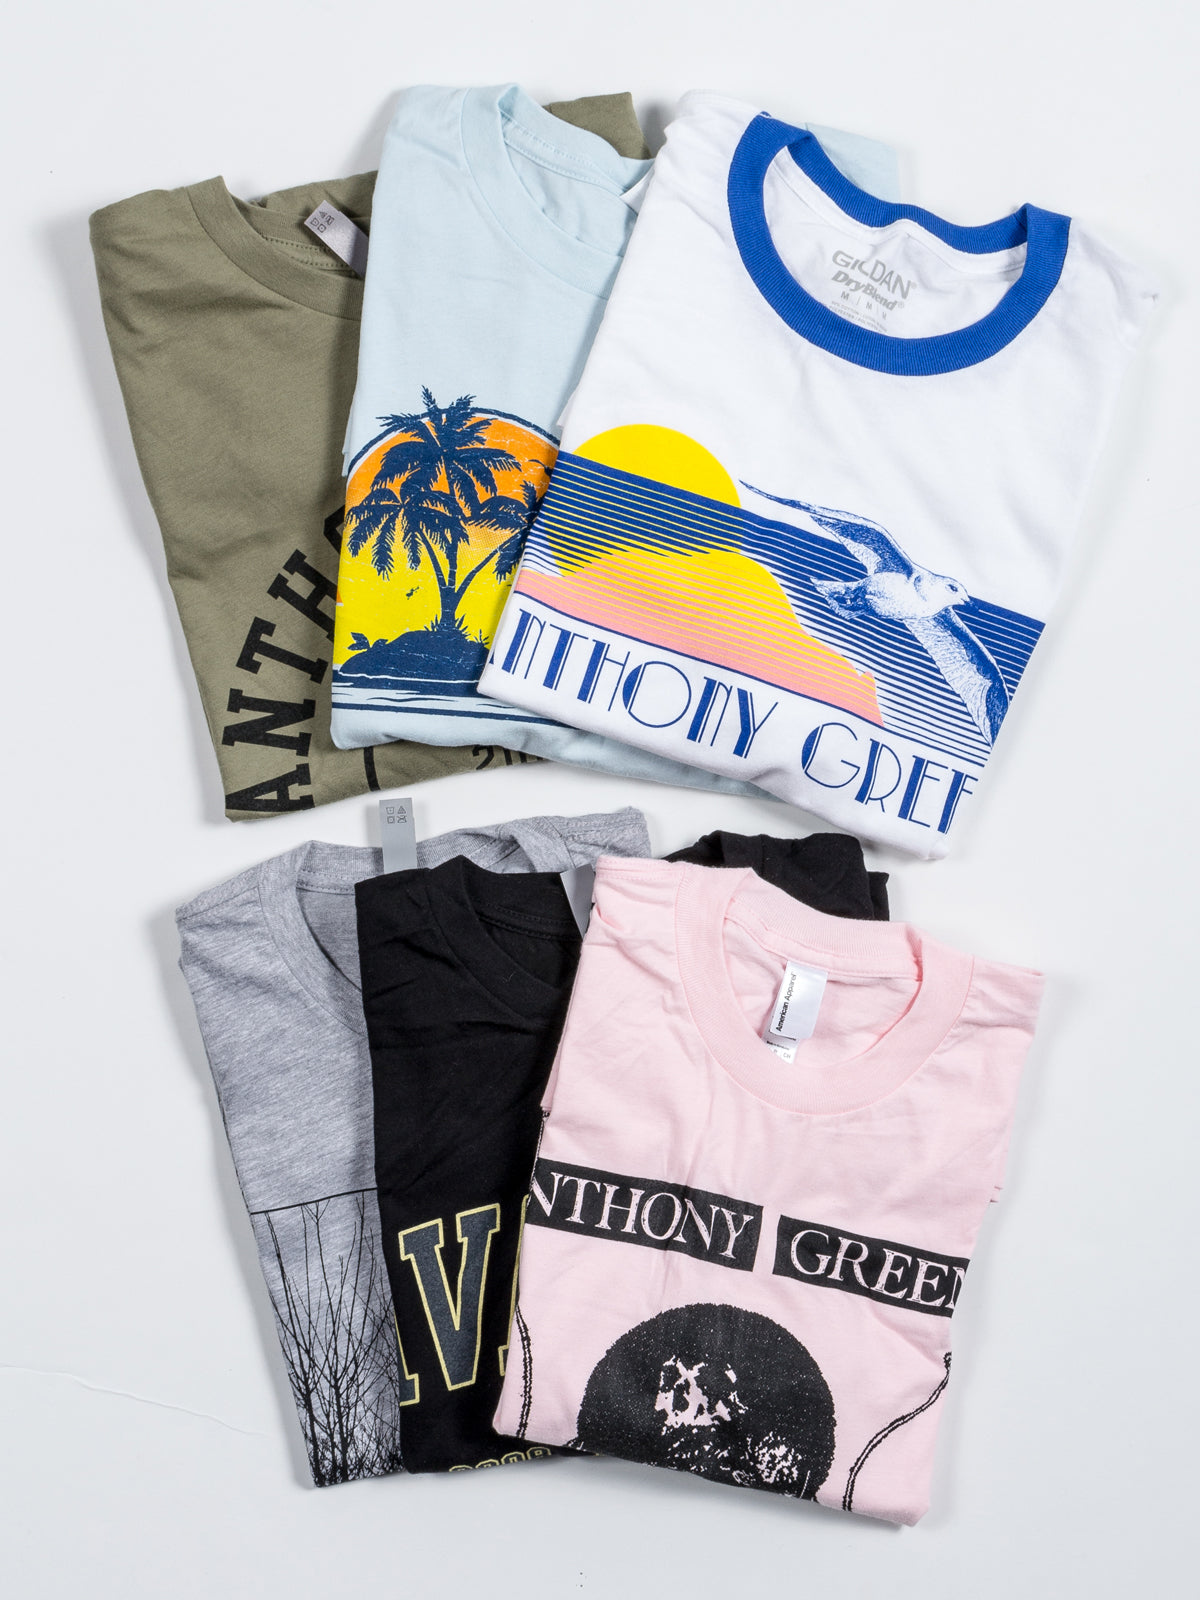 Anthony Green - Avalon Tour Mystery Sale - Merch Limited